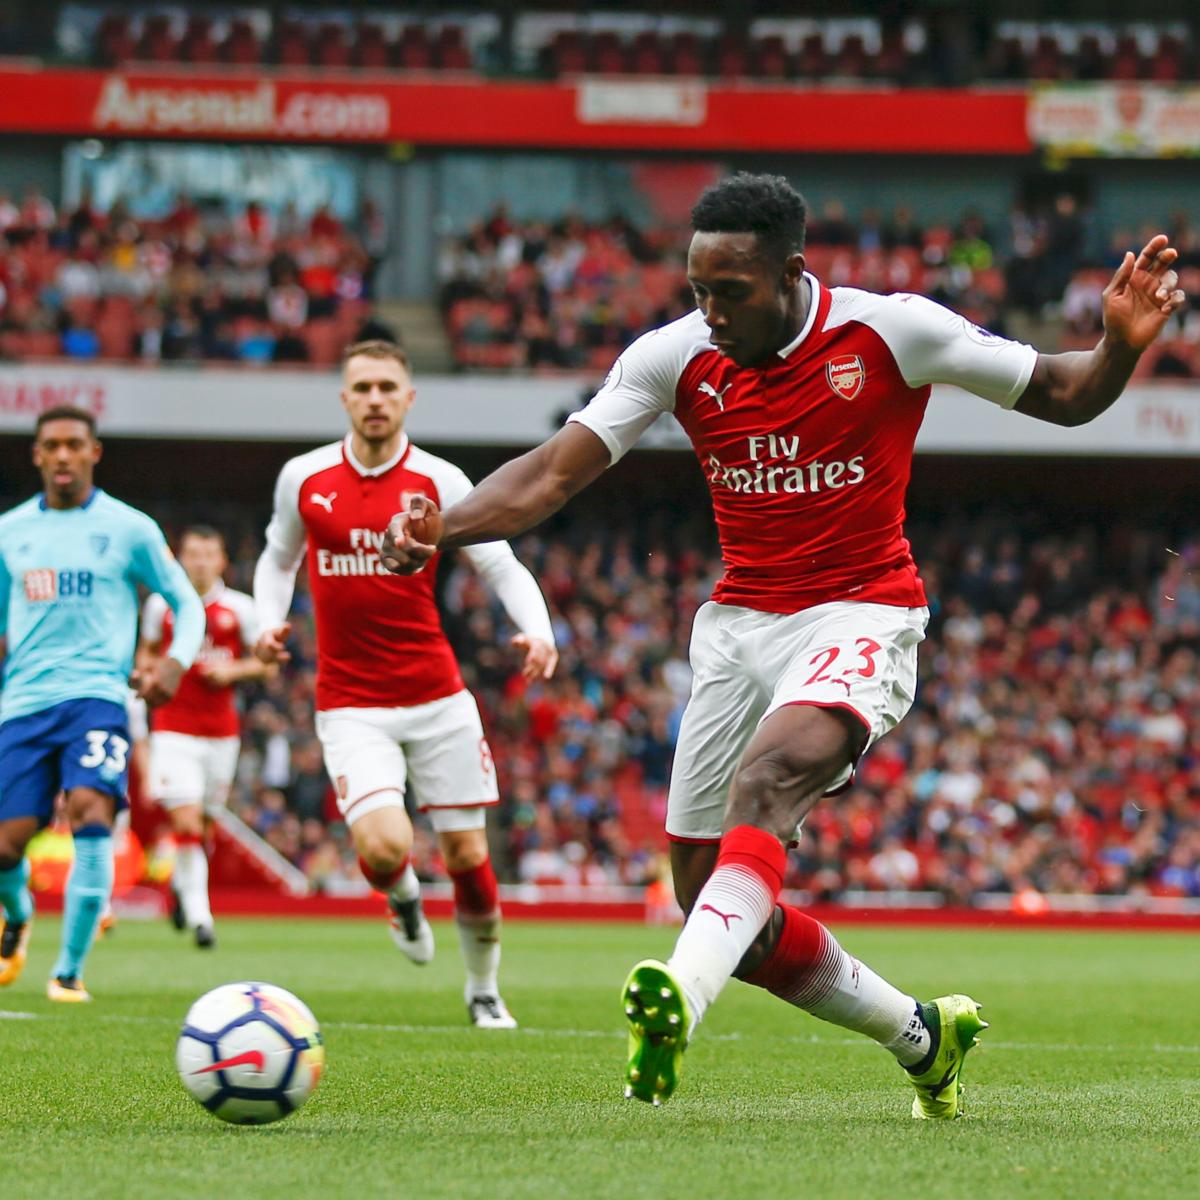 Arsenal's Danny Welbeck Stretchered off with Serious Leg Injury vs. Sporting